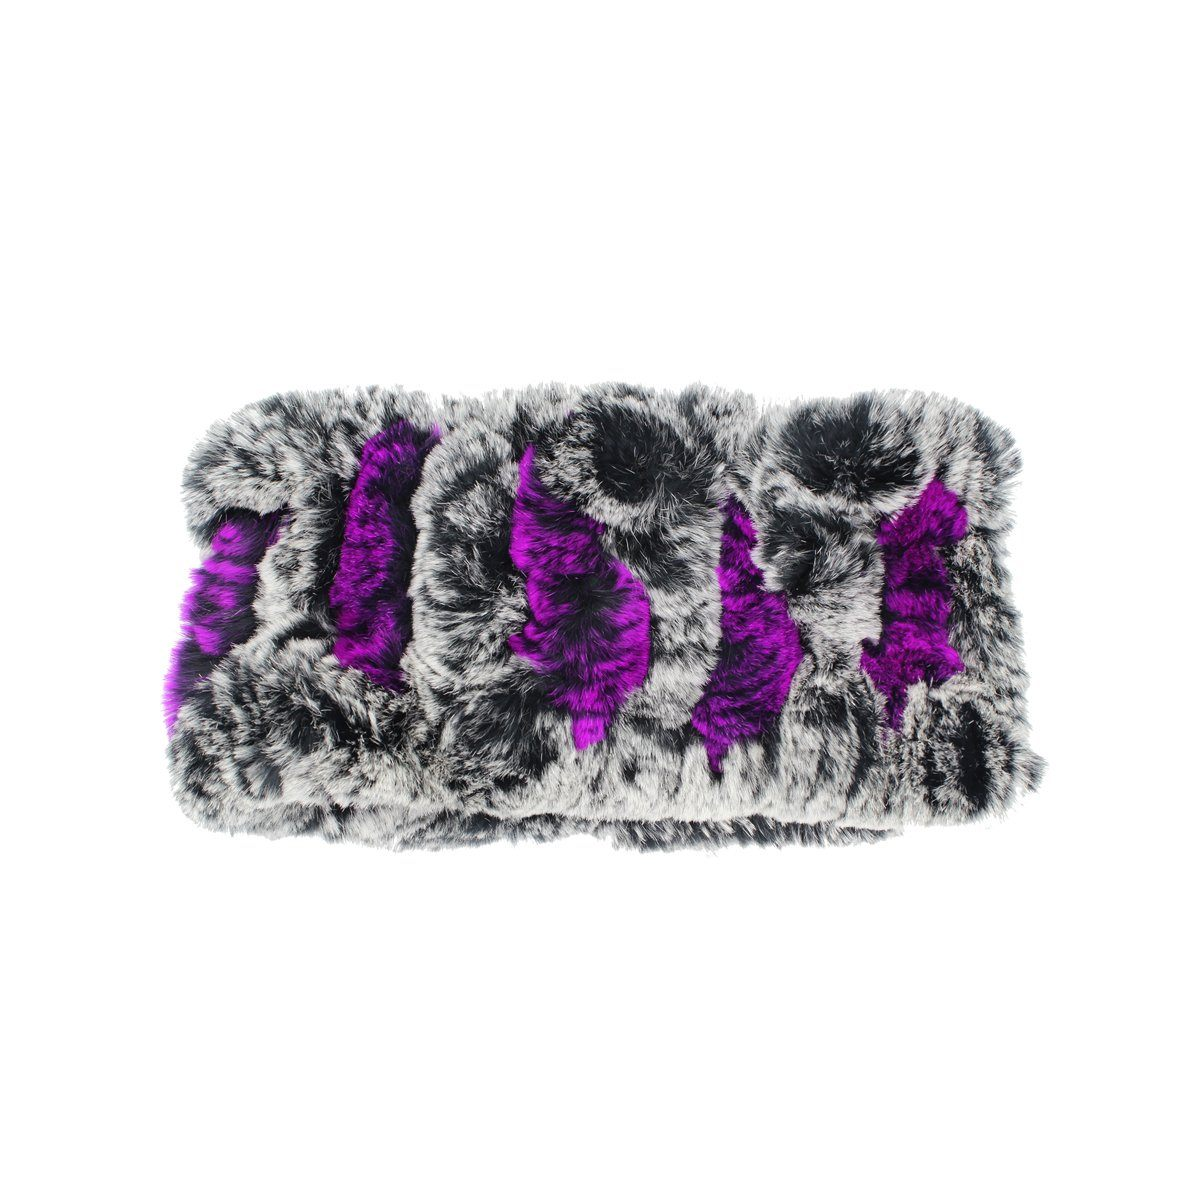 Stretch Rabbit Fur Headwrap Premium Fur Manière Purple